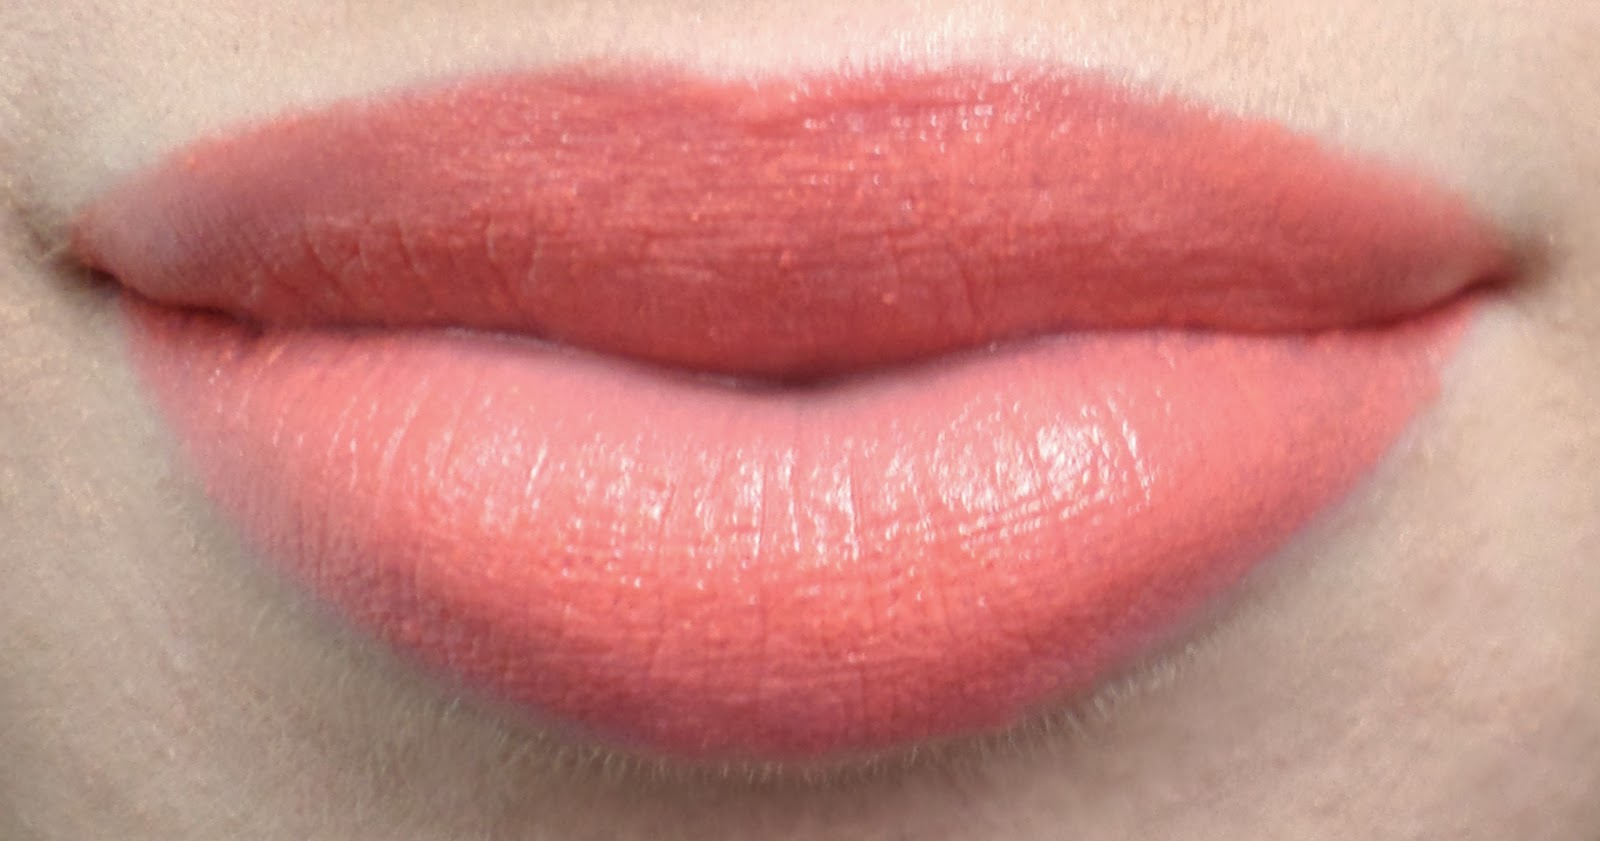 Born Pretty Velvet Finish Moisturising Lipstick in the Shade 01 On Lips